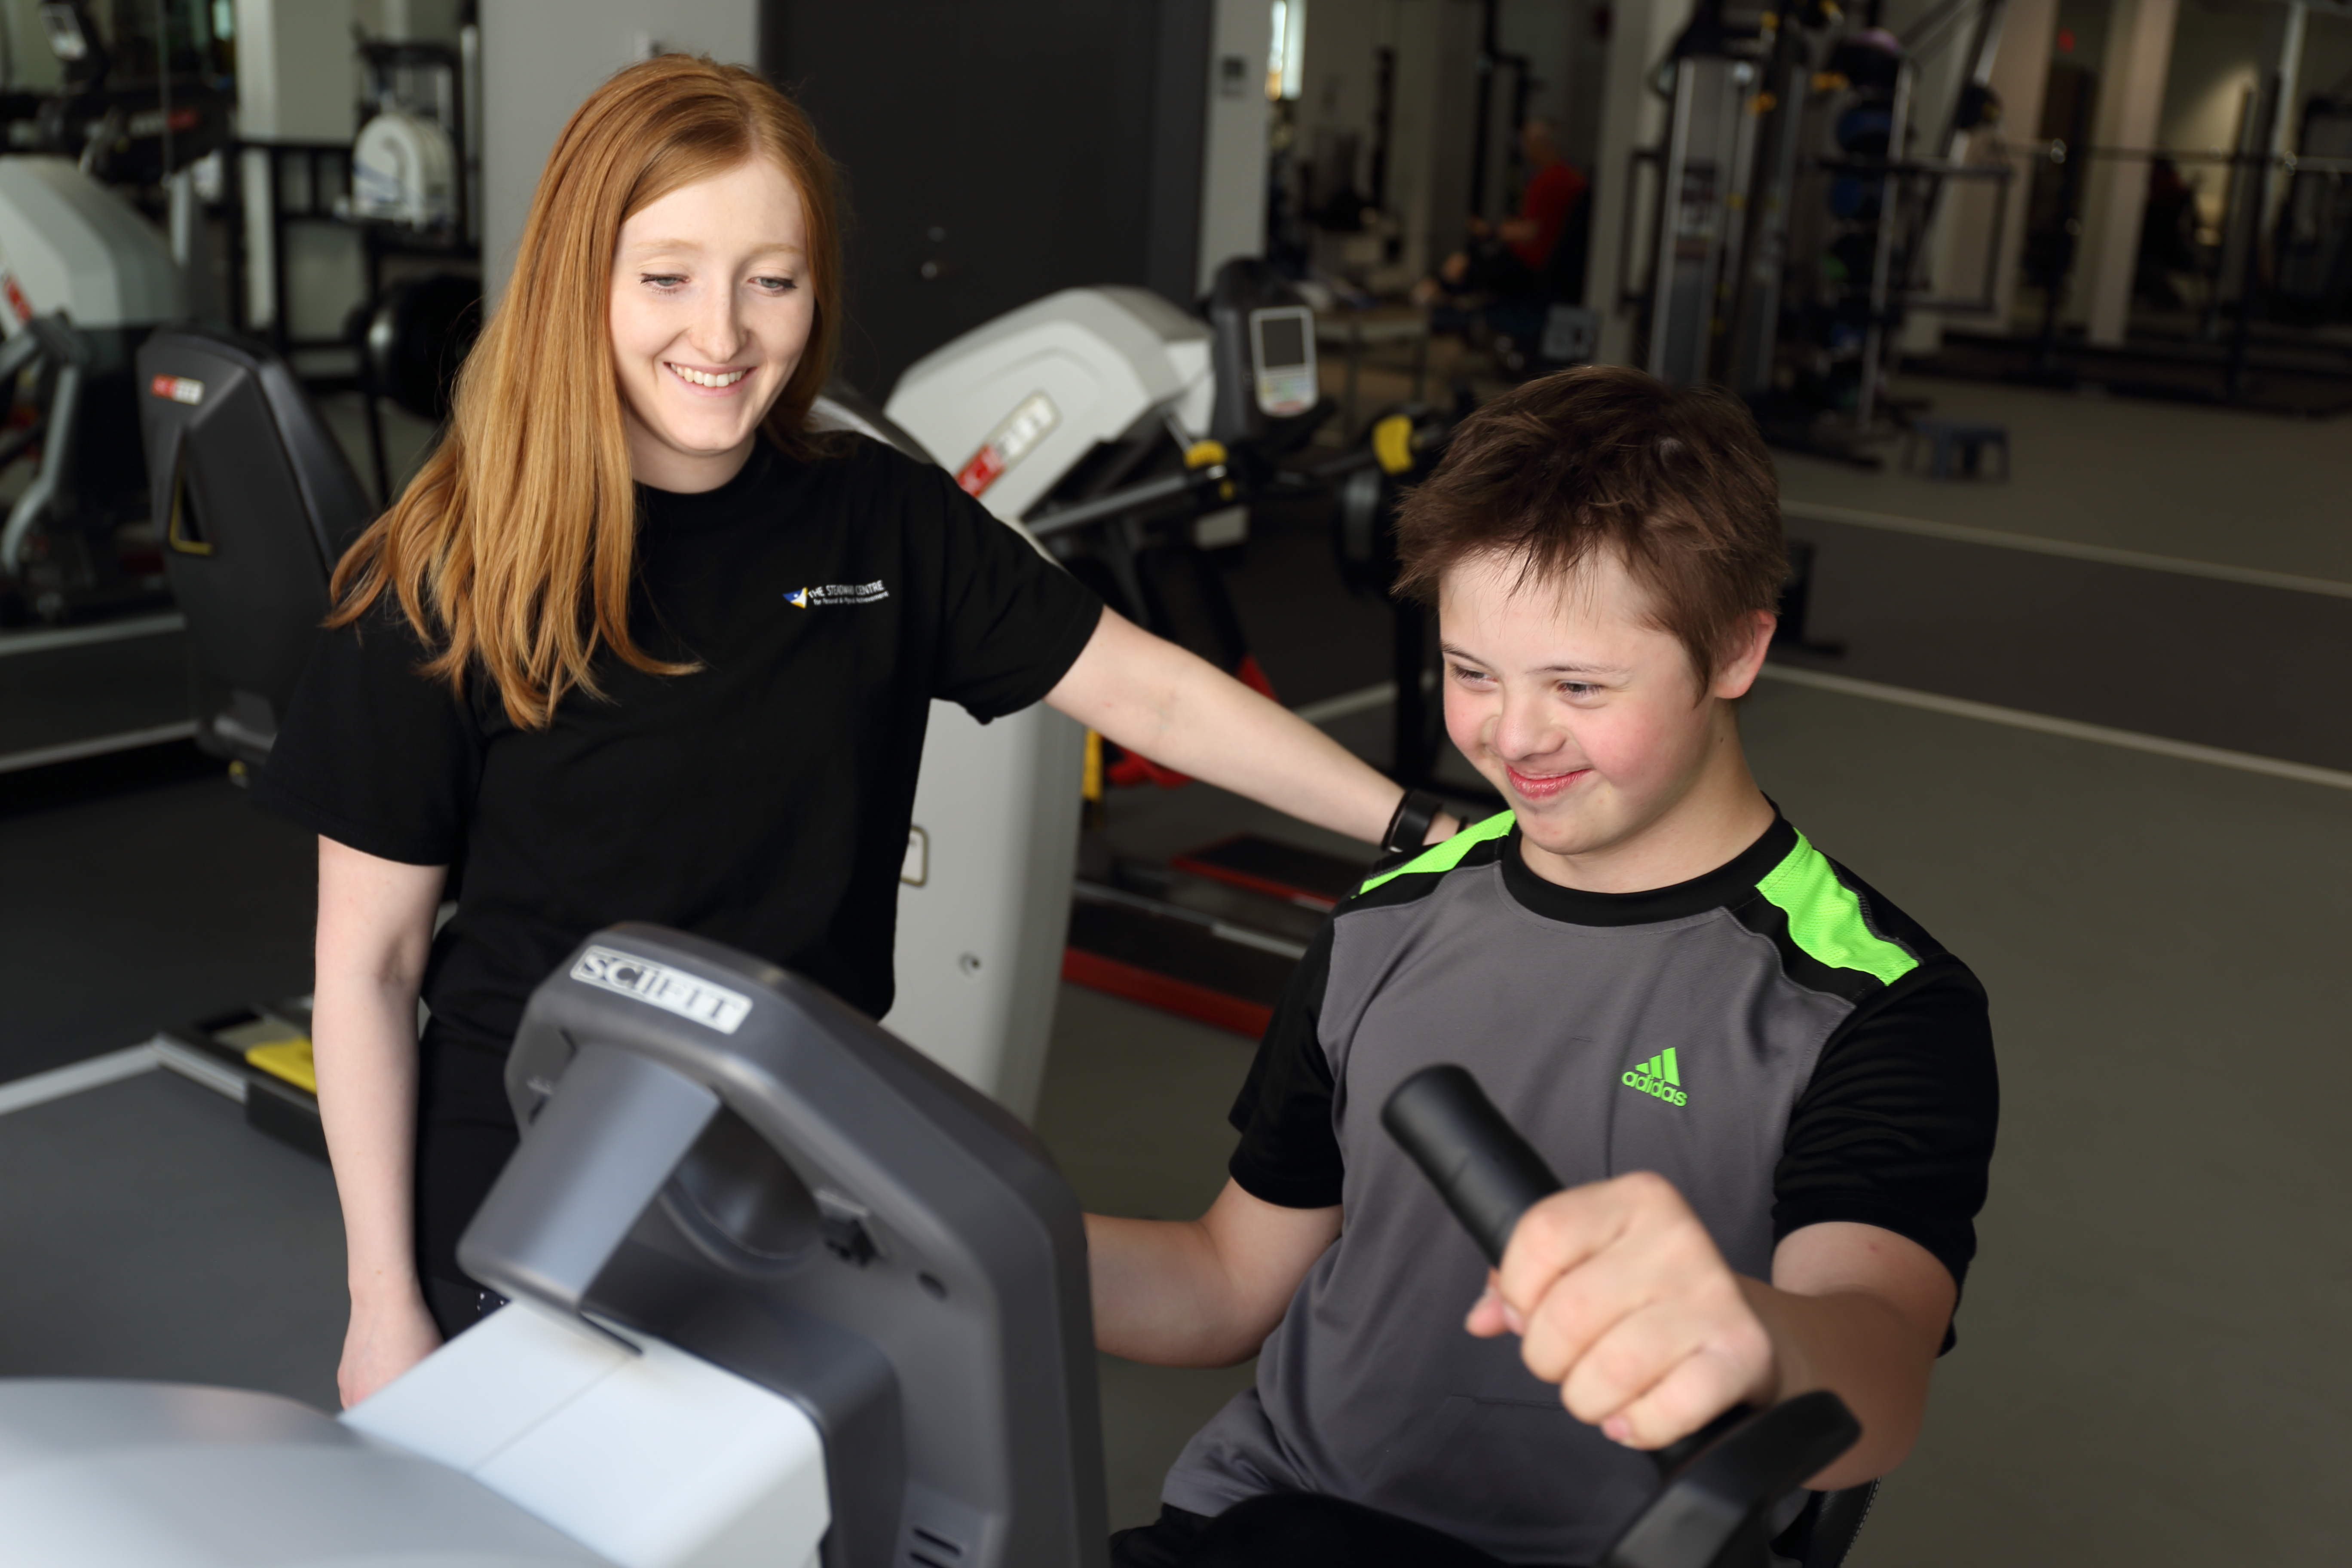 A female coach watches over a boy who is using a piece of exercise equipment.